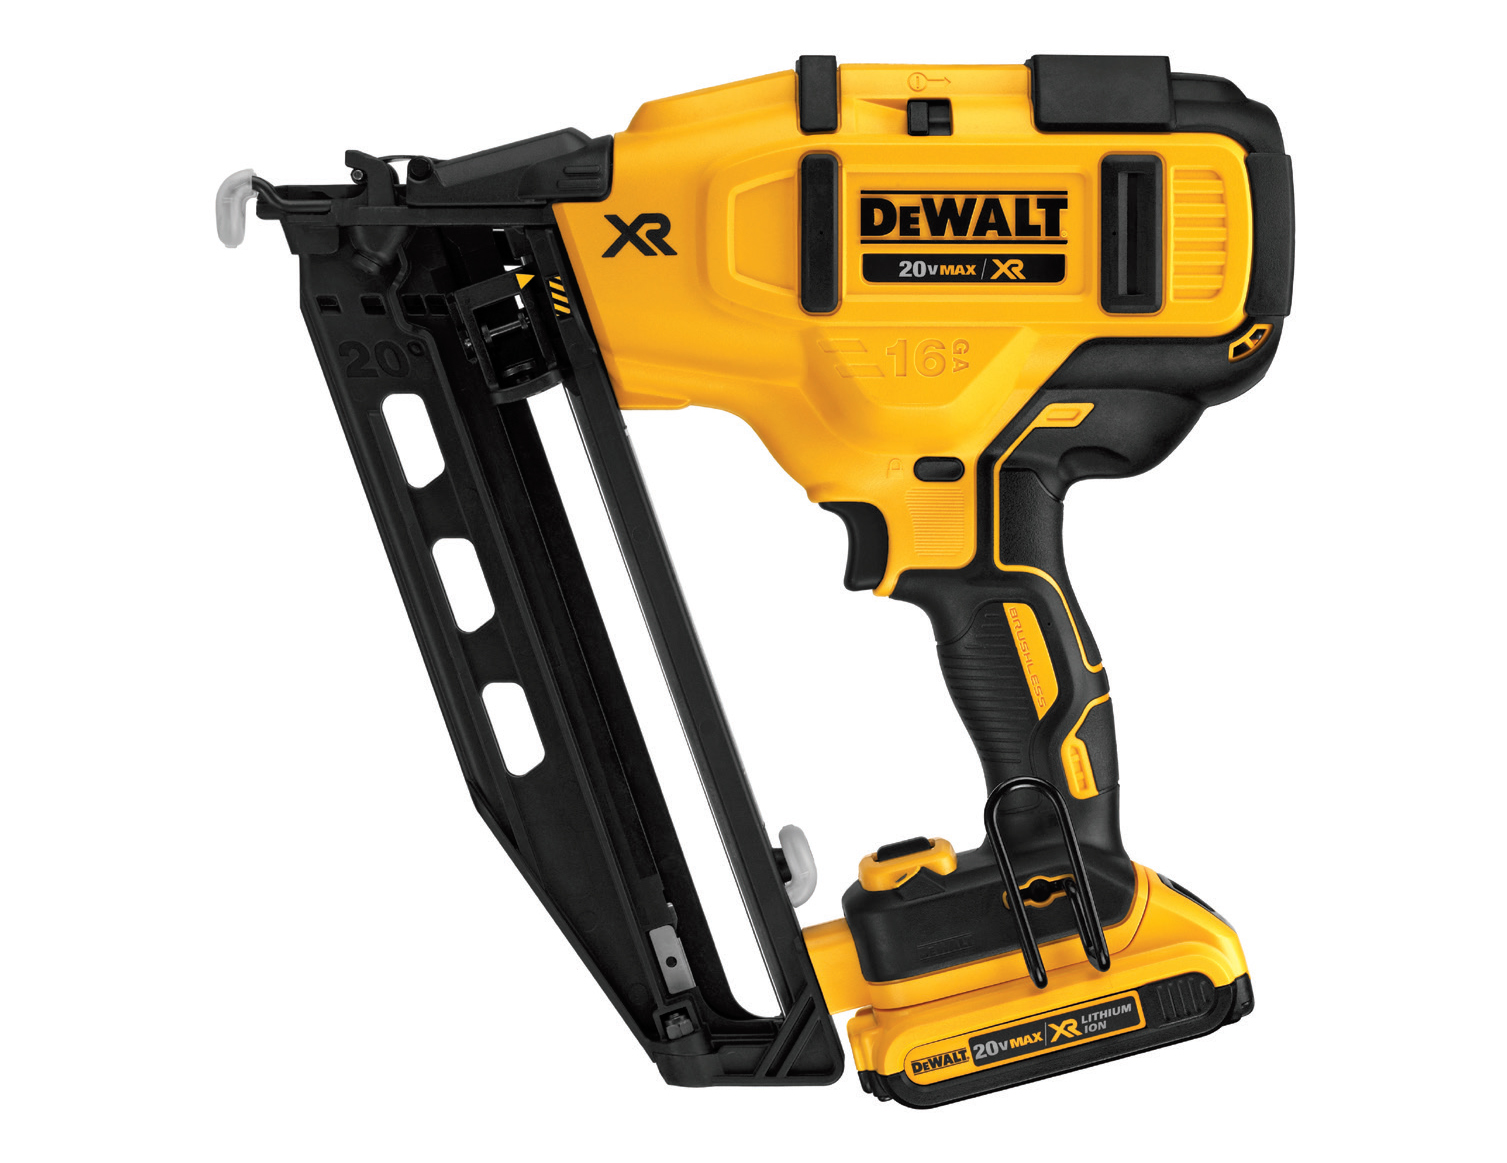 Dewalt Dcn660 Finish Nailer Jlc Online Nail Guns